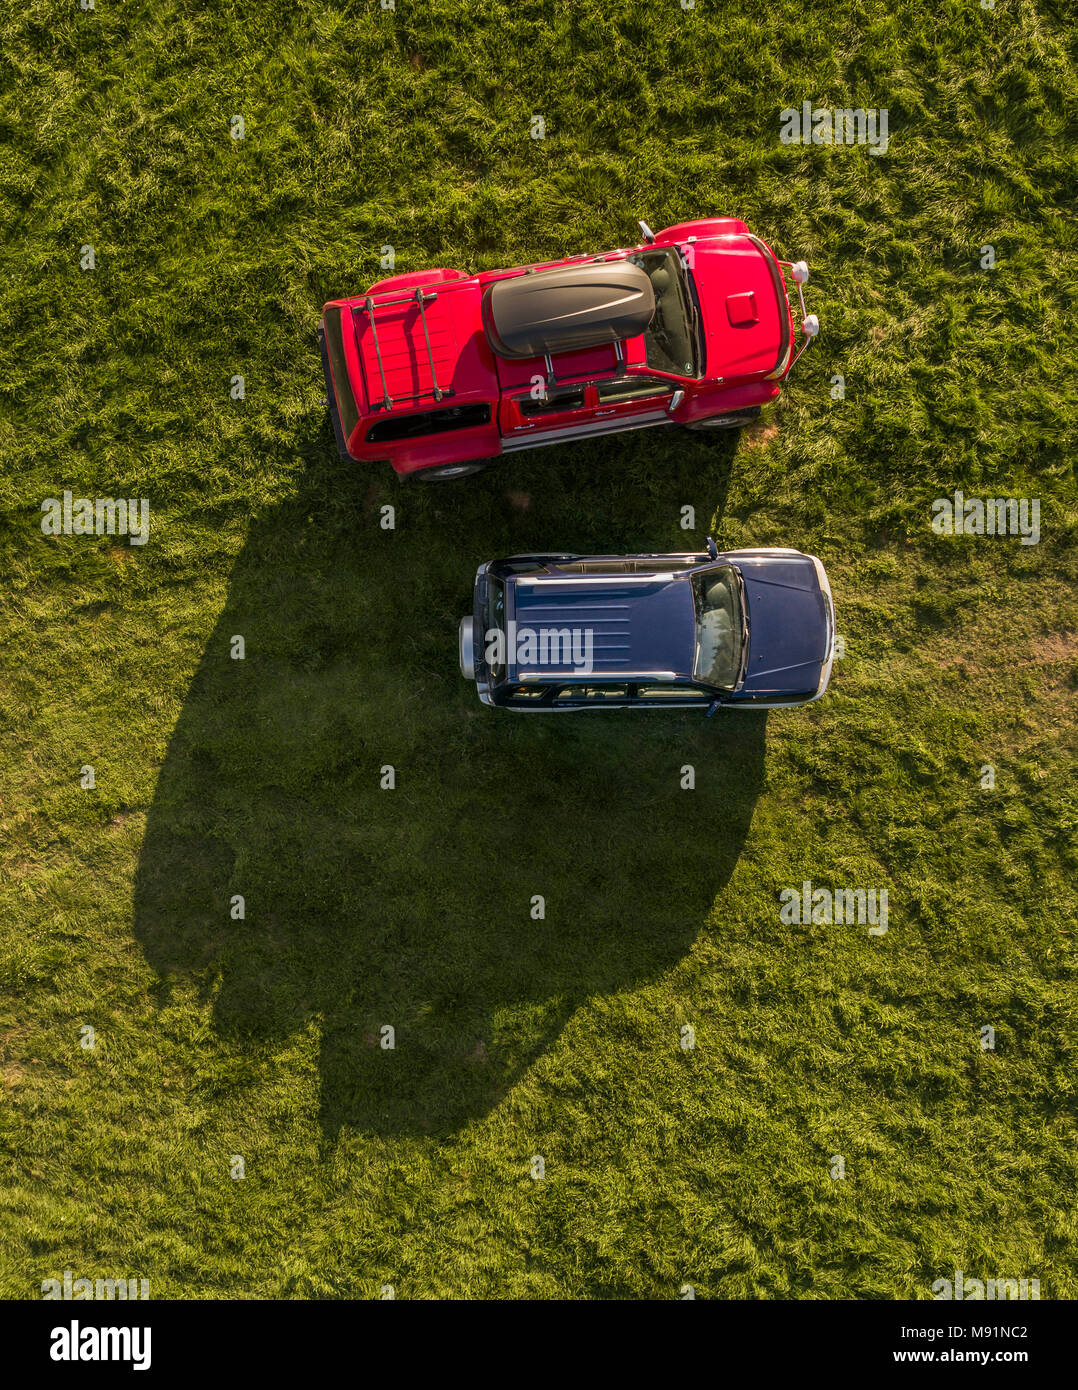 Aerial view of a Hilux truck and SUV. - Stock Image